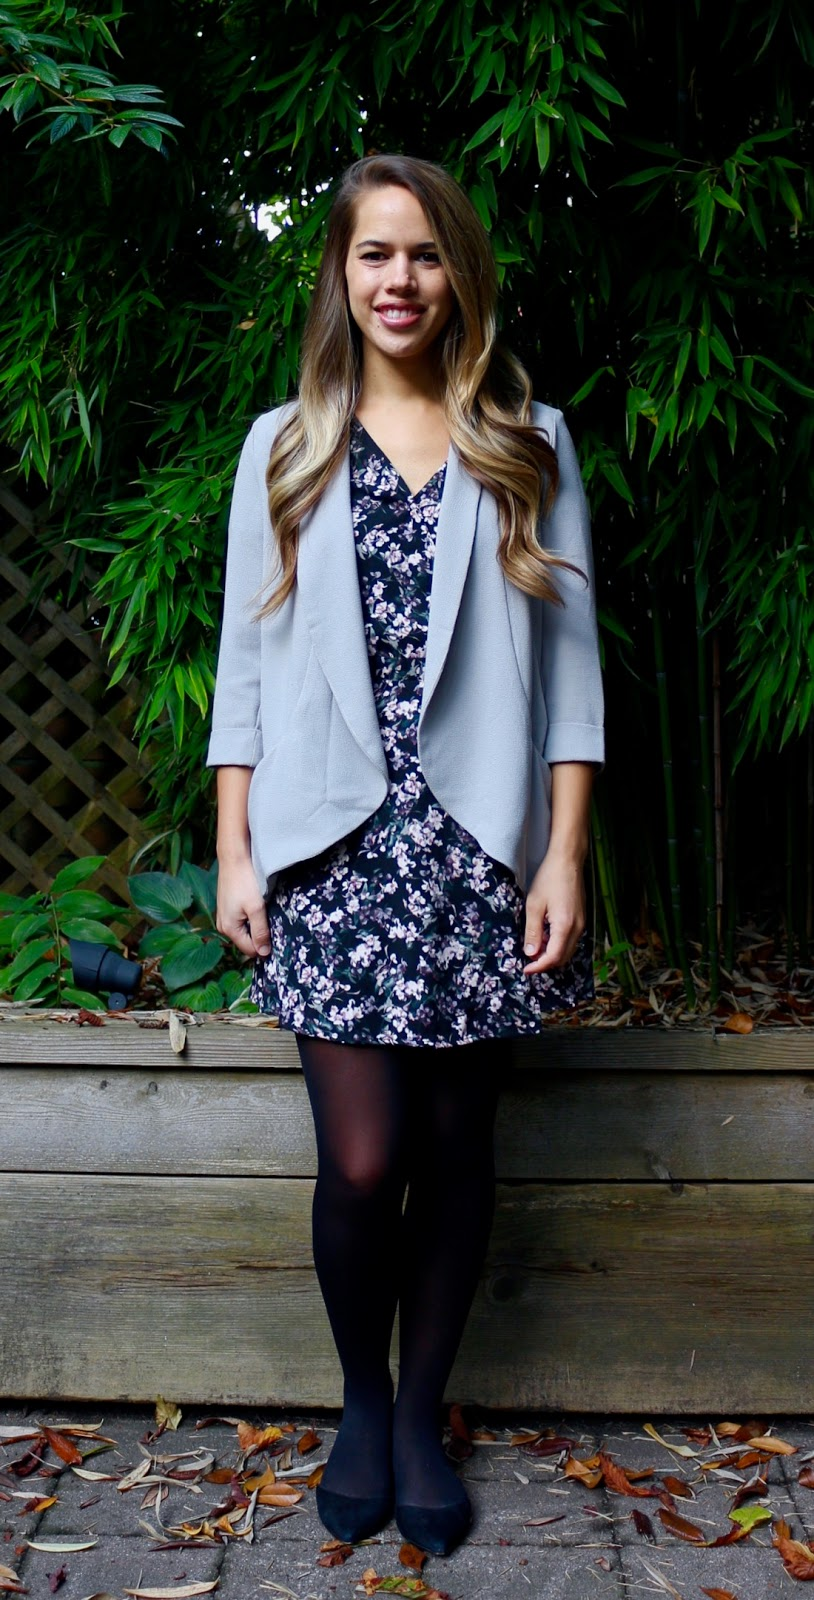 Jules in Flats - Floral Wrap Dress with Blazer (Business Casual Fall Workwear on a Budget)